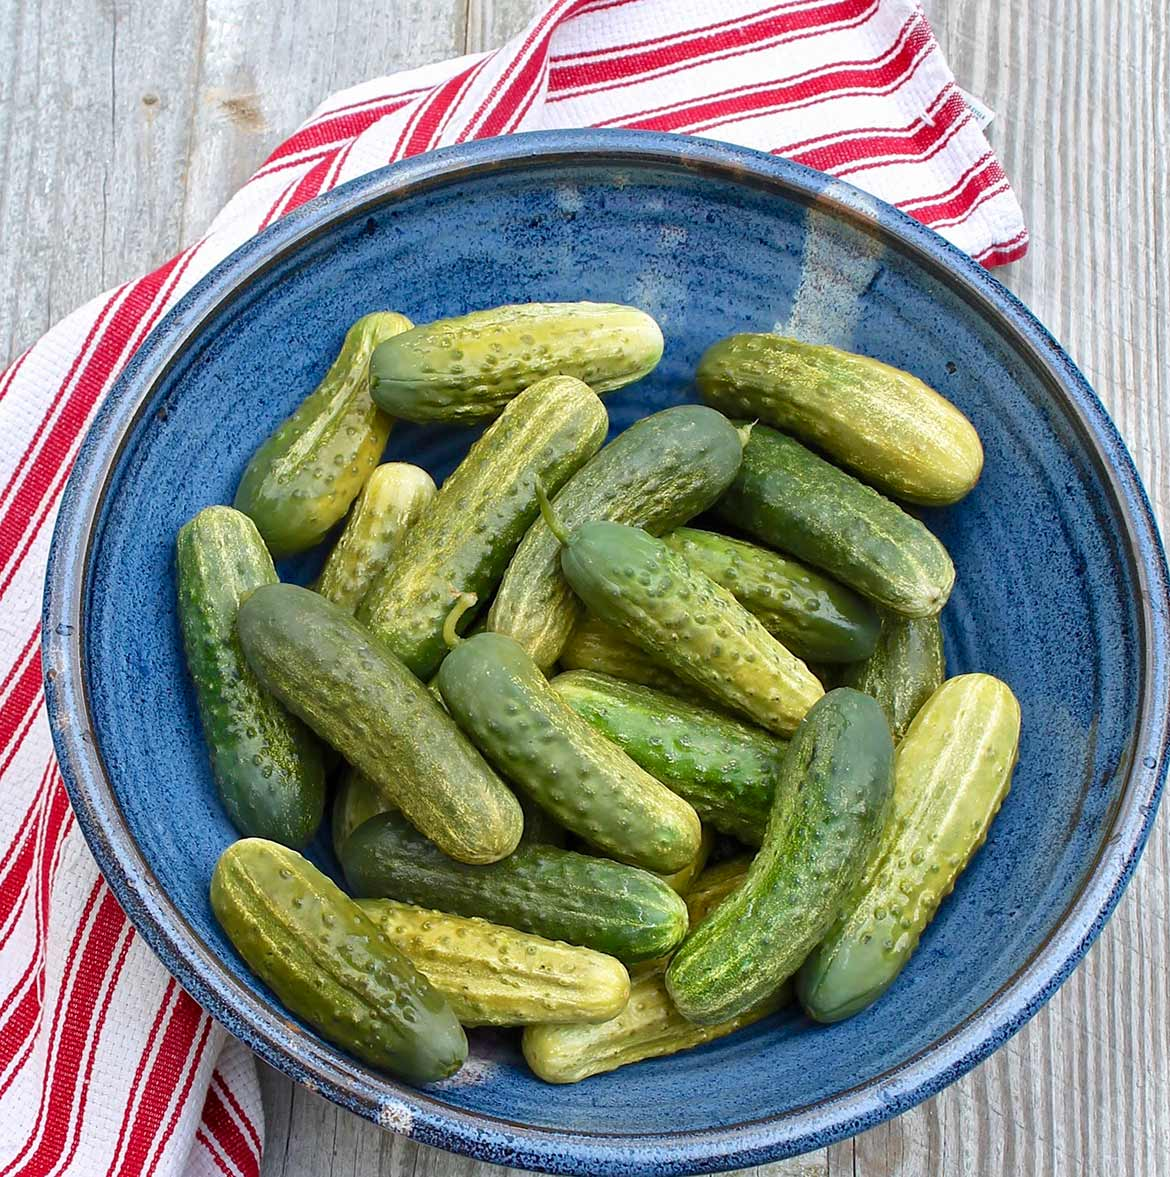 Refrigerator Dill Pickles – No canner is needed and once the spices are assembled, these crisp pickles come together easily and may just become a summertime favorite!